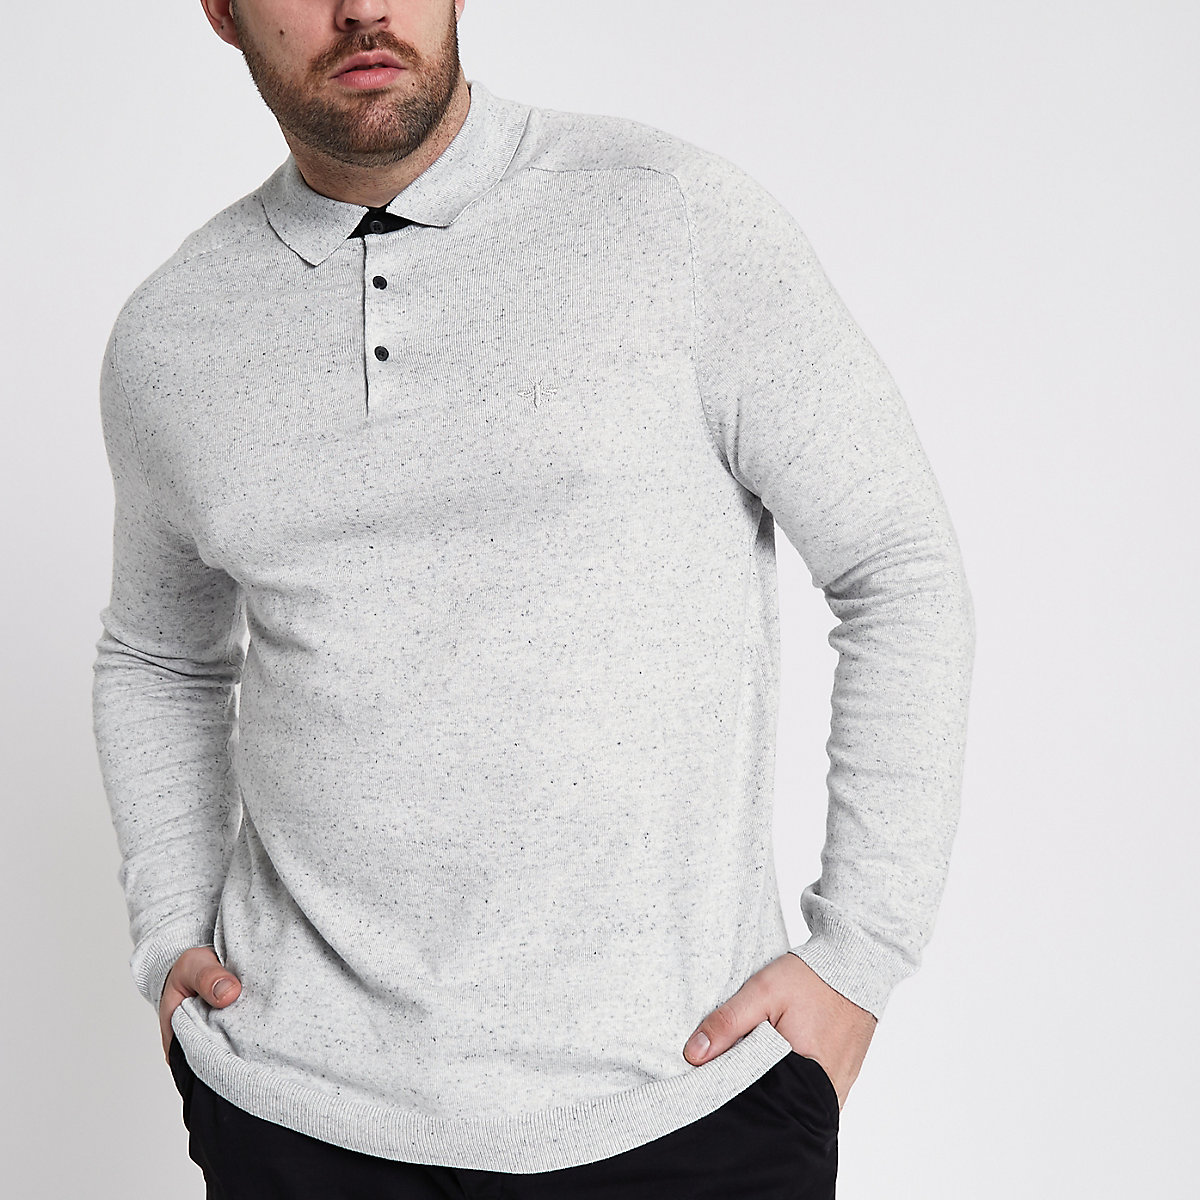 Big and Tall grey long sleeve knit polo shirt